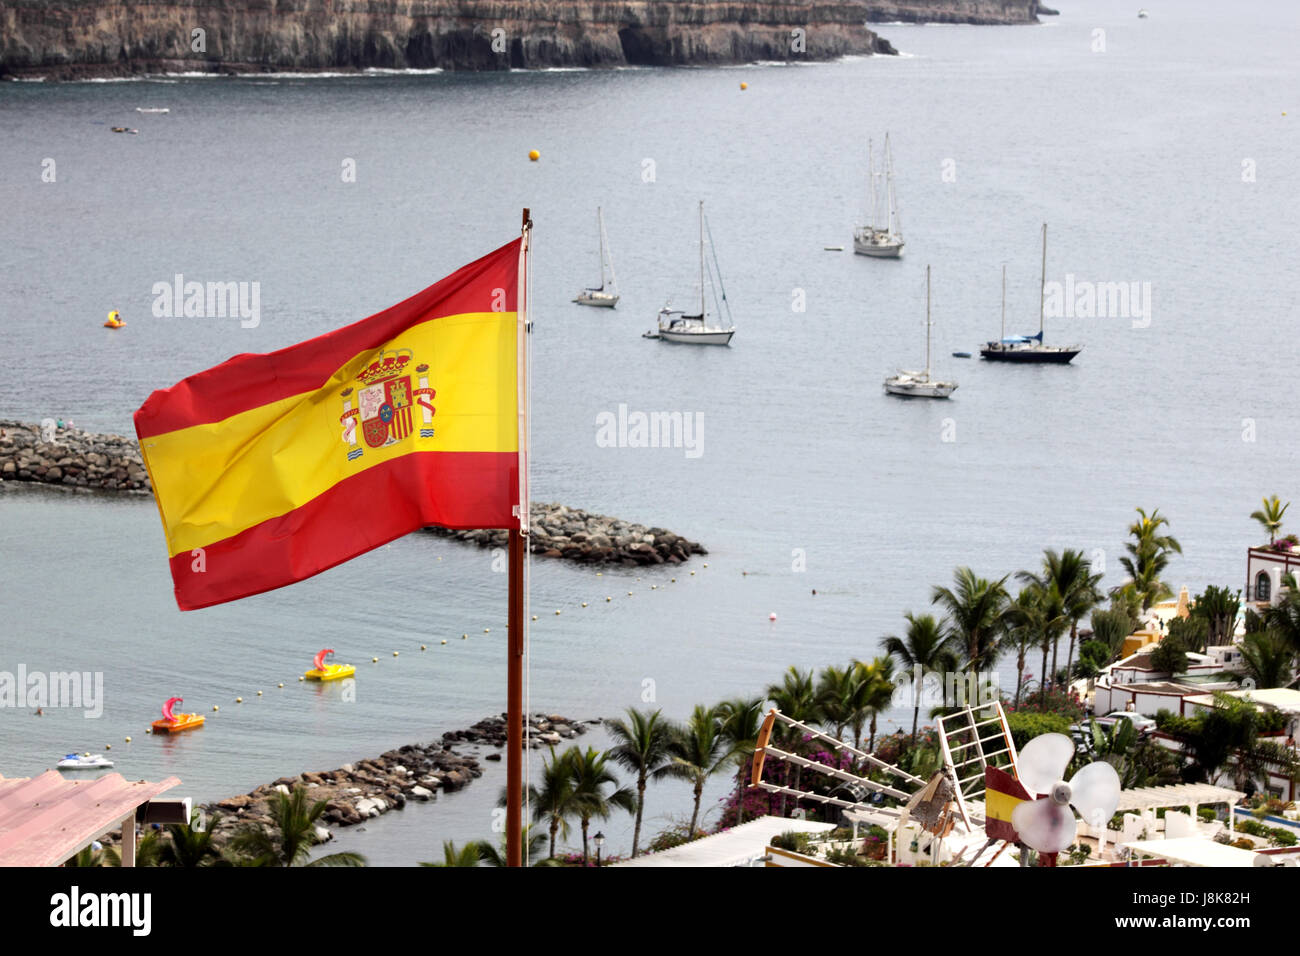 SPANISH COURTESY FLAG ENSIGN SAILING BOATING YACHTING CRUISING in SPAIN